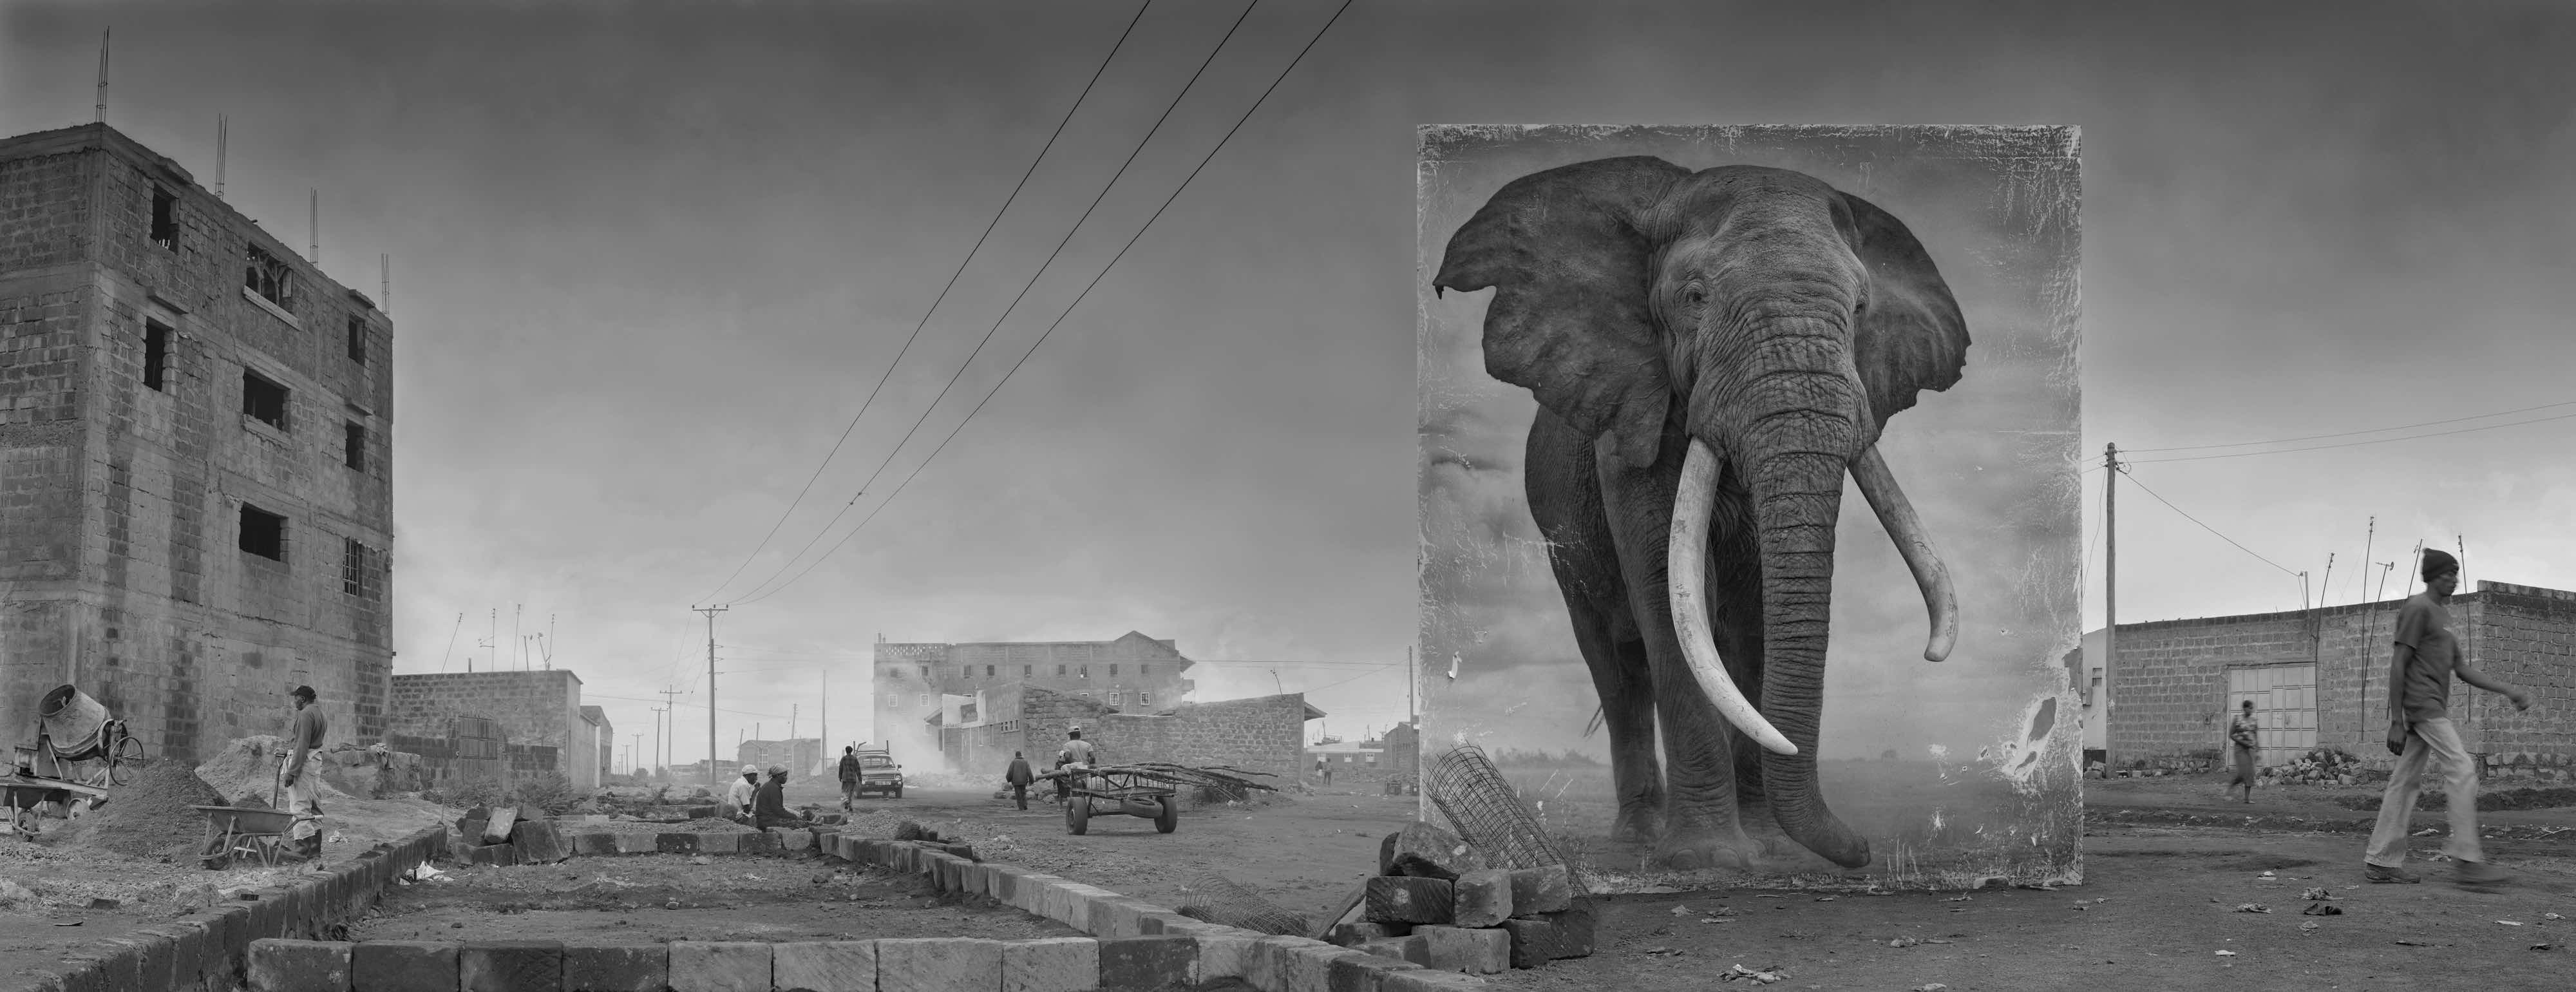 'Road With Elephant'